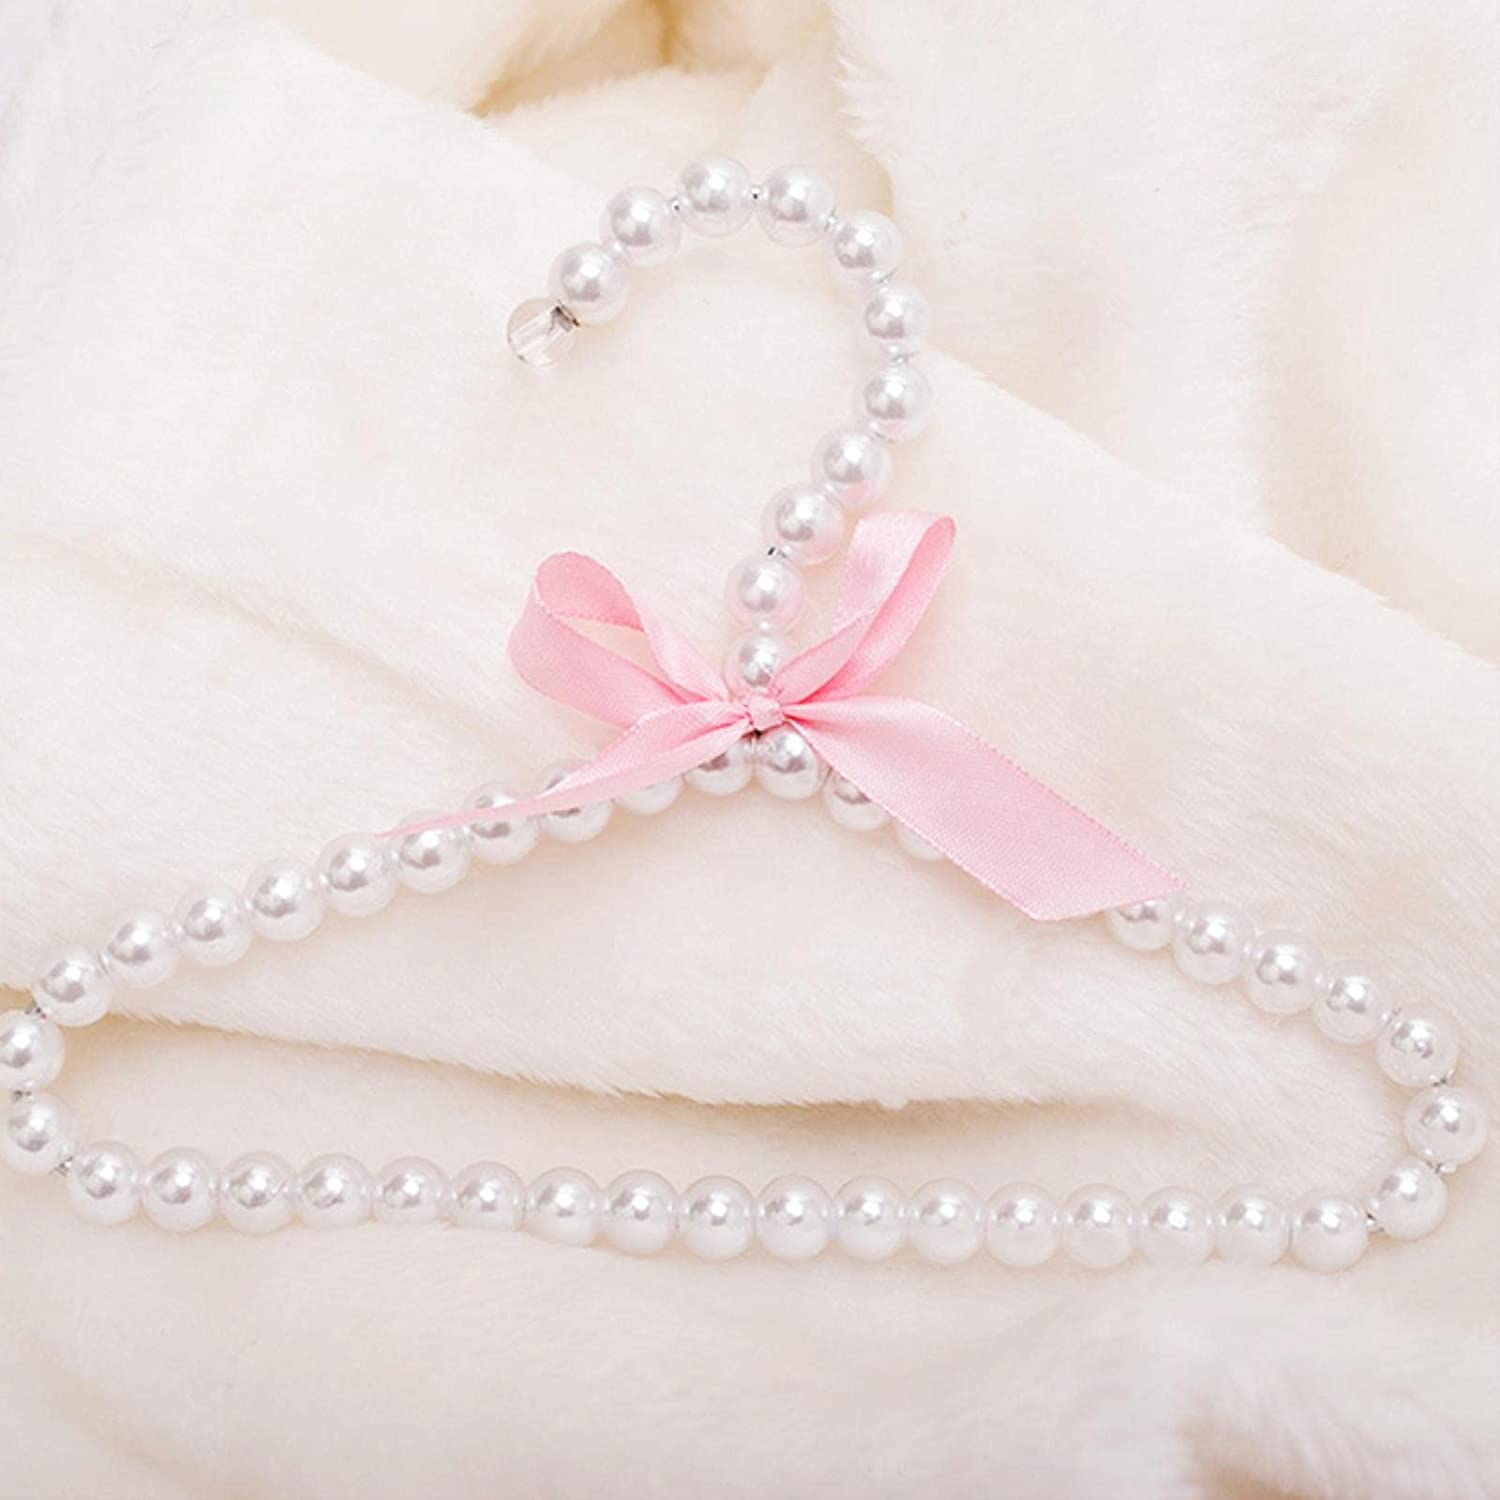 Lzjbs 1Pcs 20cm Children Pearl Hanger Pe Hangers Outlet ☆ Free Shipping Max 87% OFF Clothes Dog for